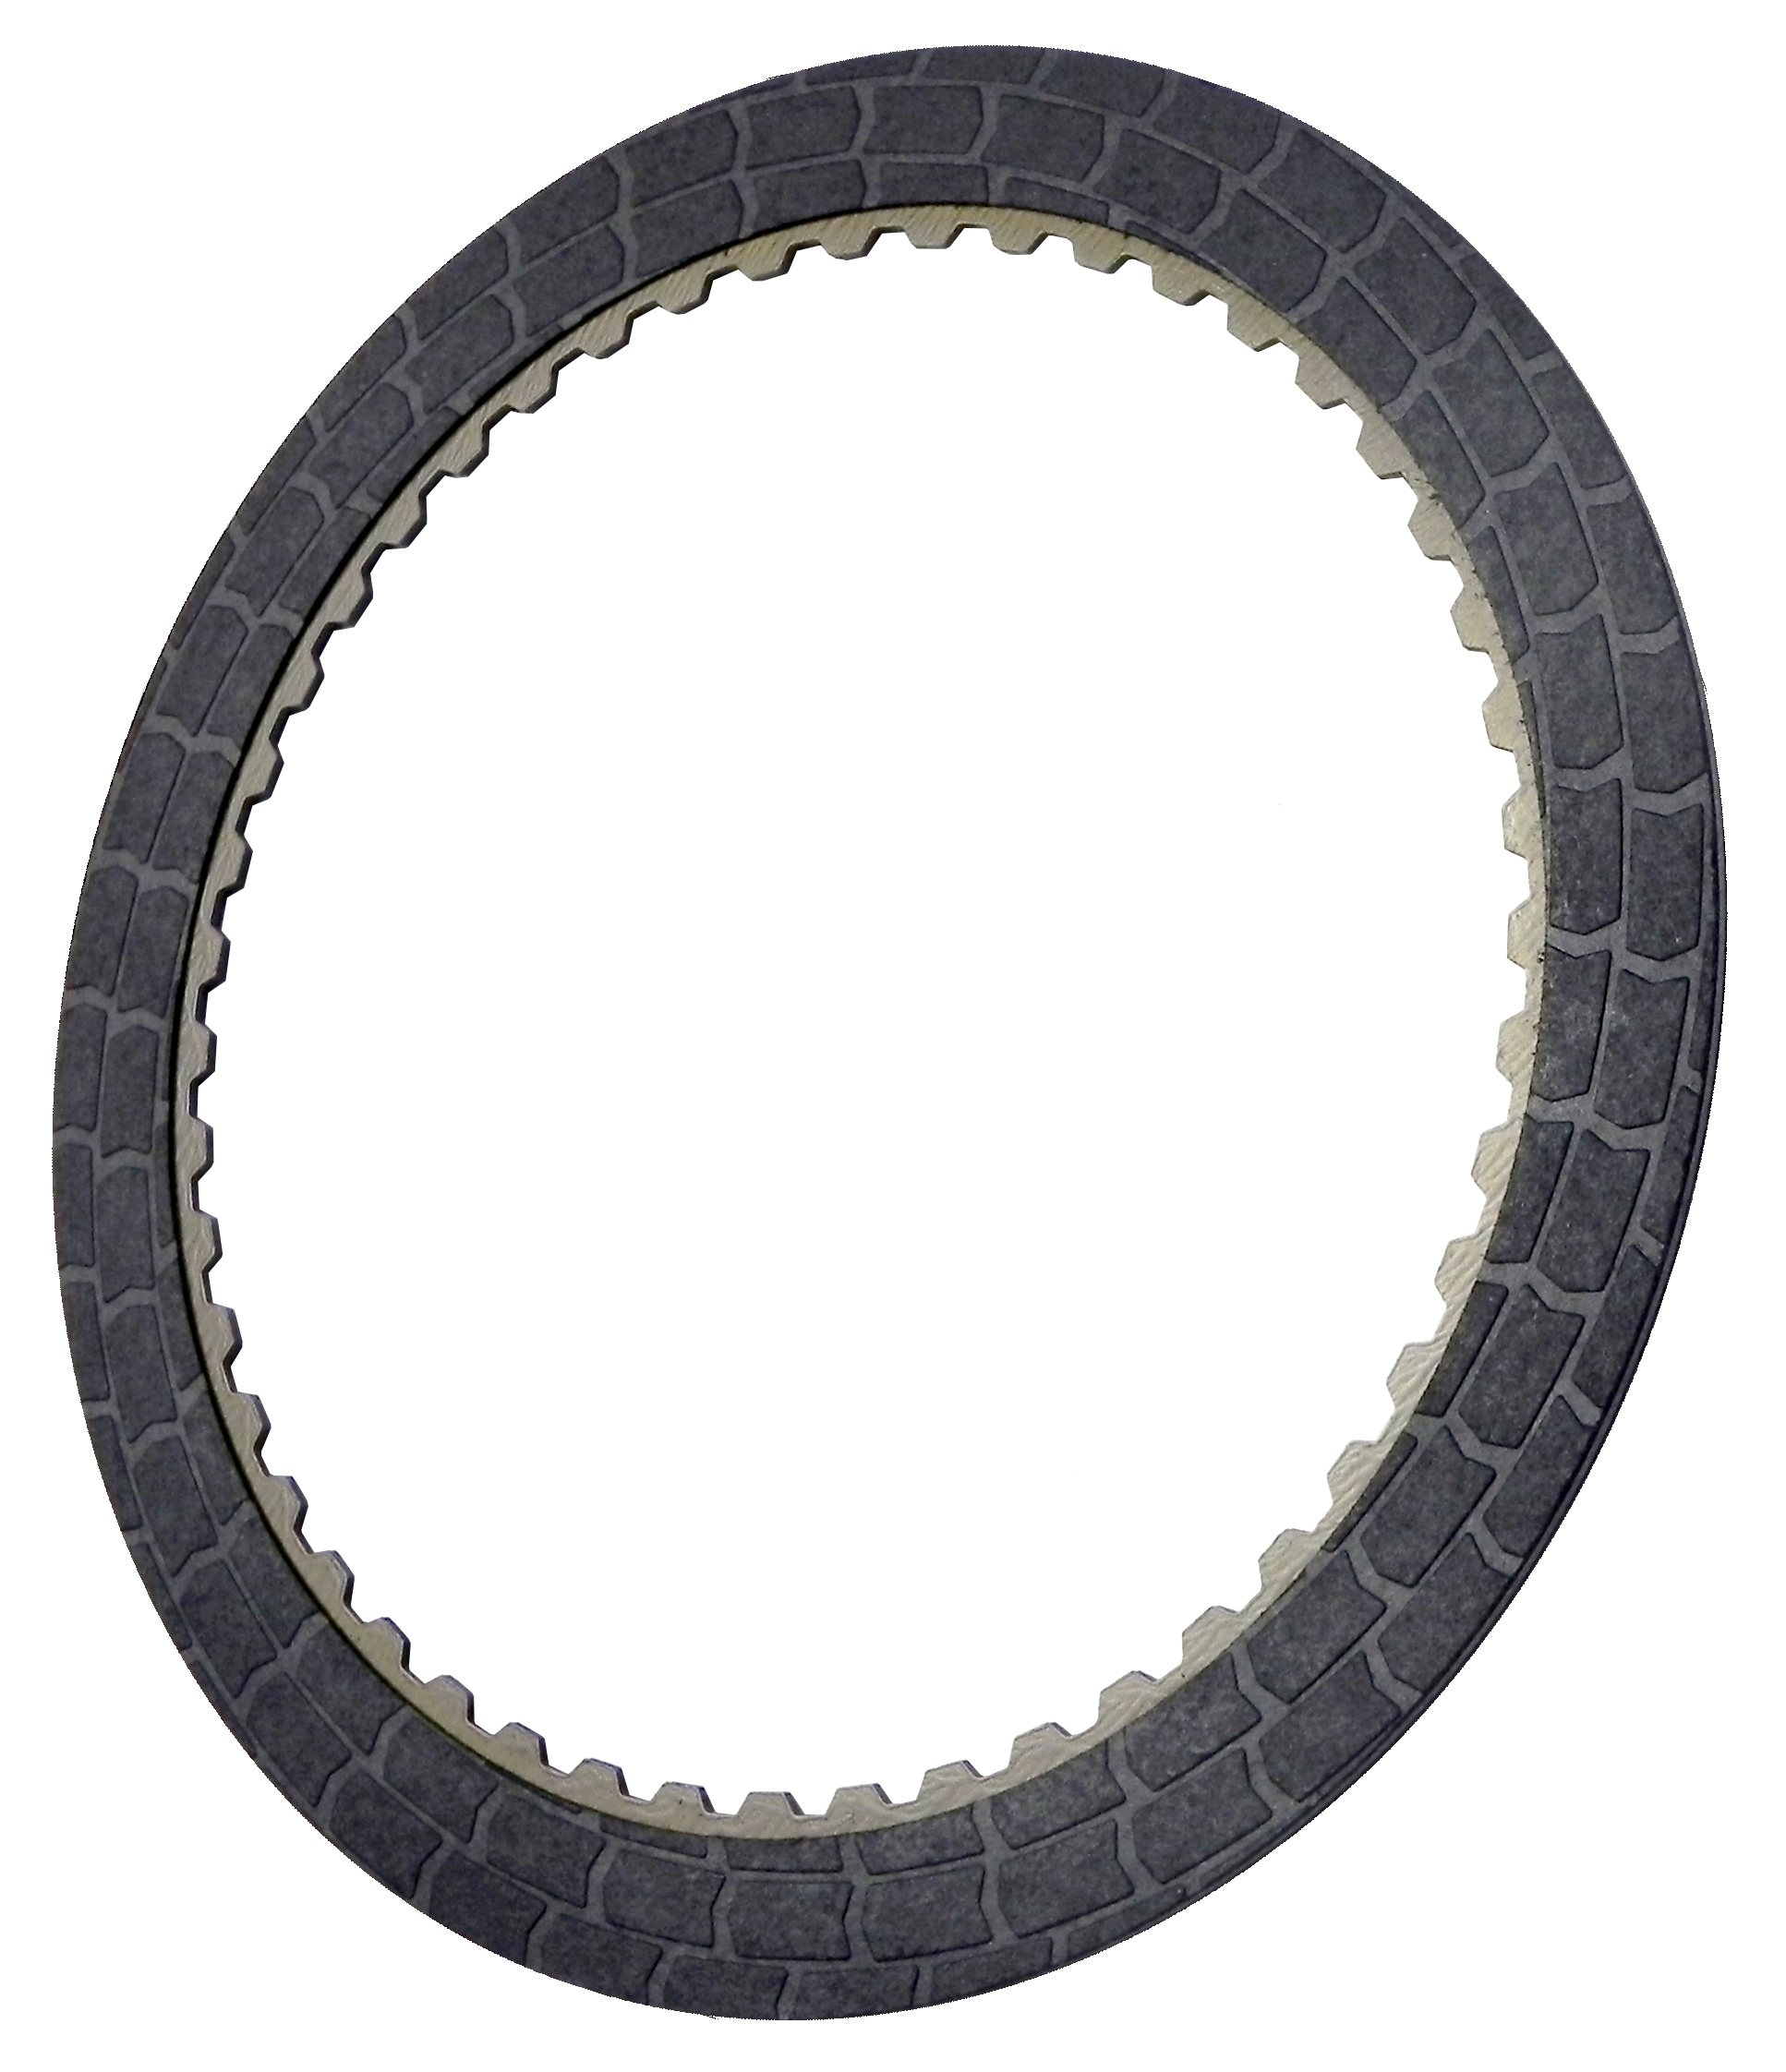 C3, A4LD, A4LD-E, 4R44E, 4R55E, 5R44E, 5R55E (HT) Hybrid Technology Friction Clutch Plate